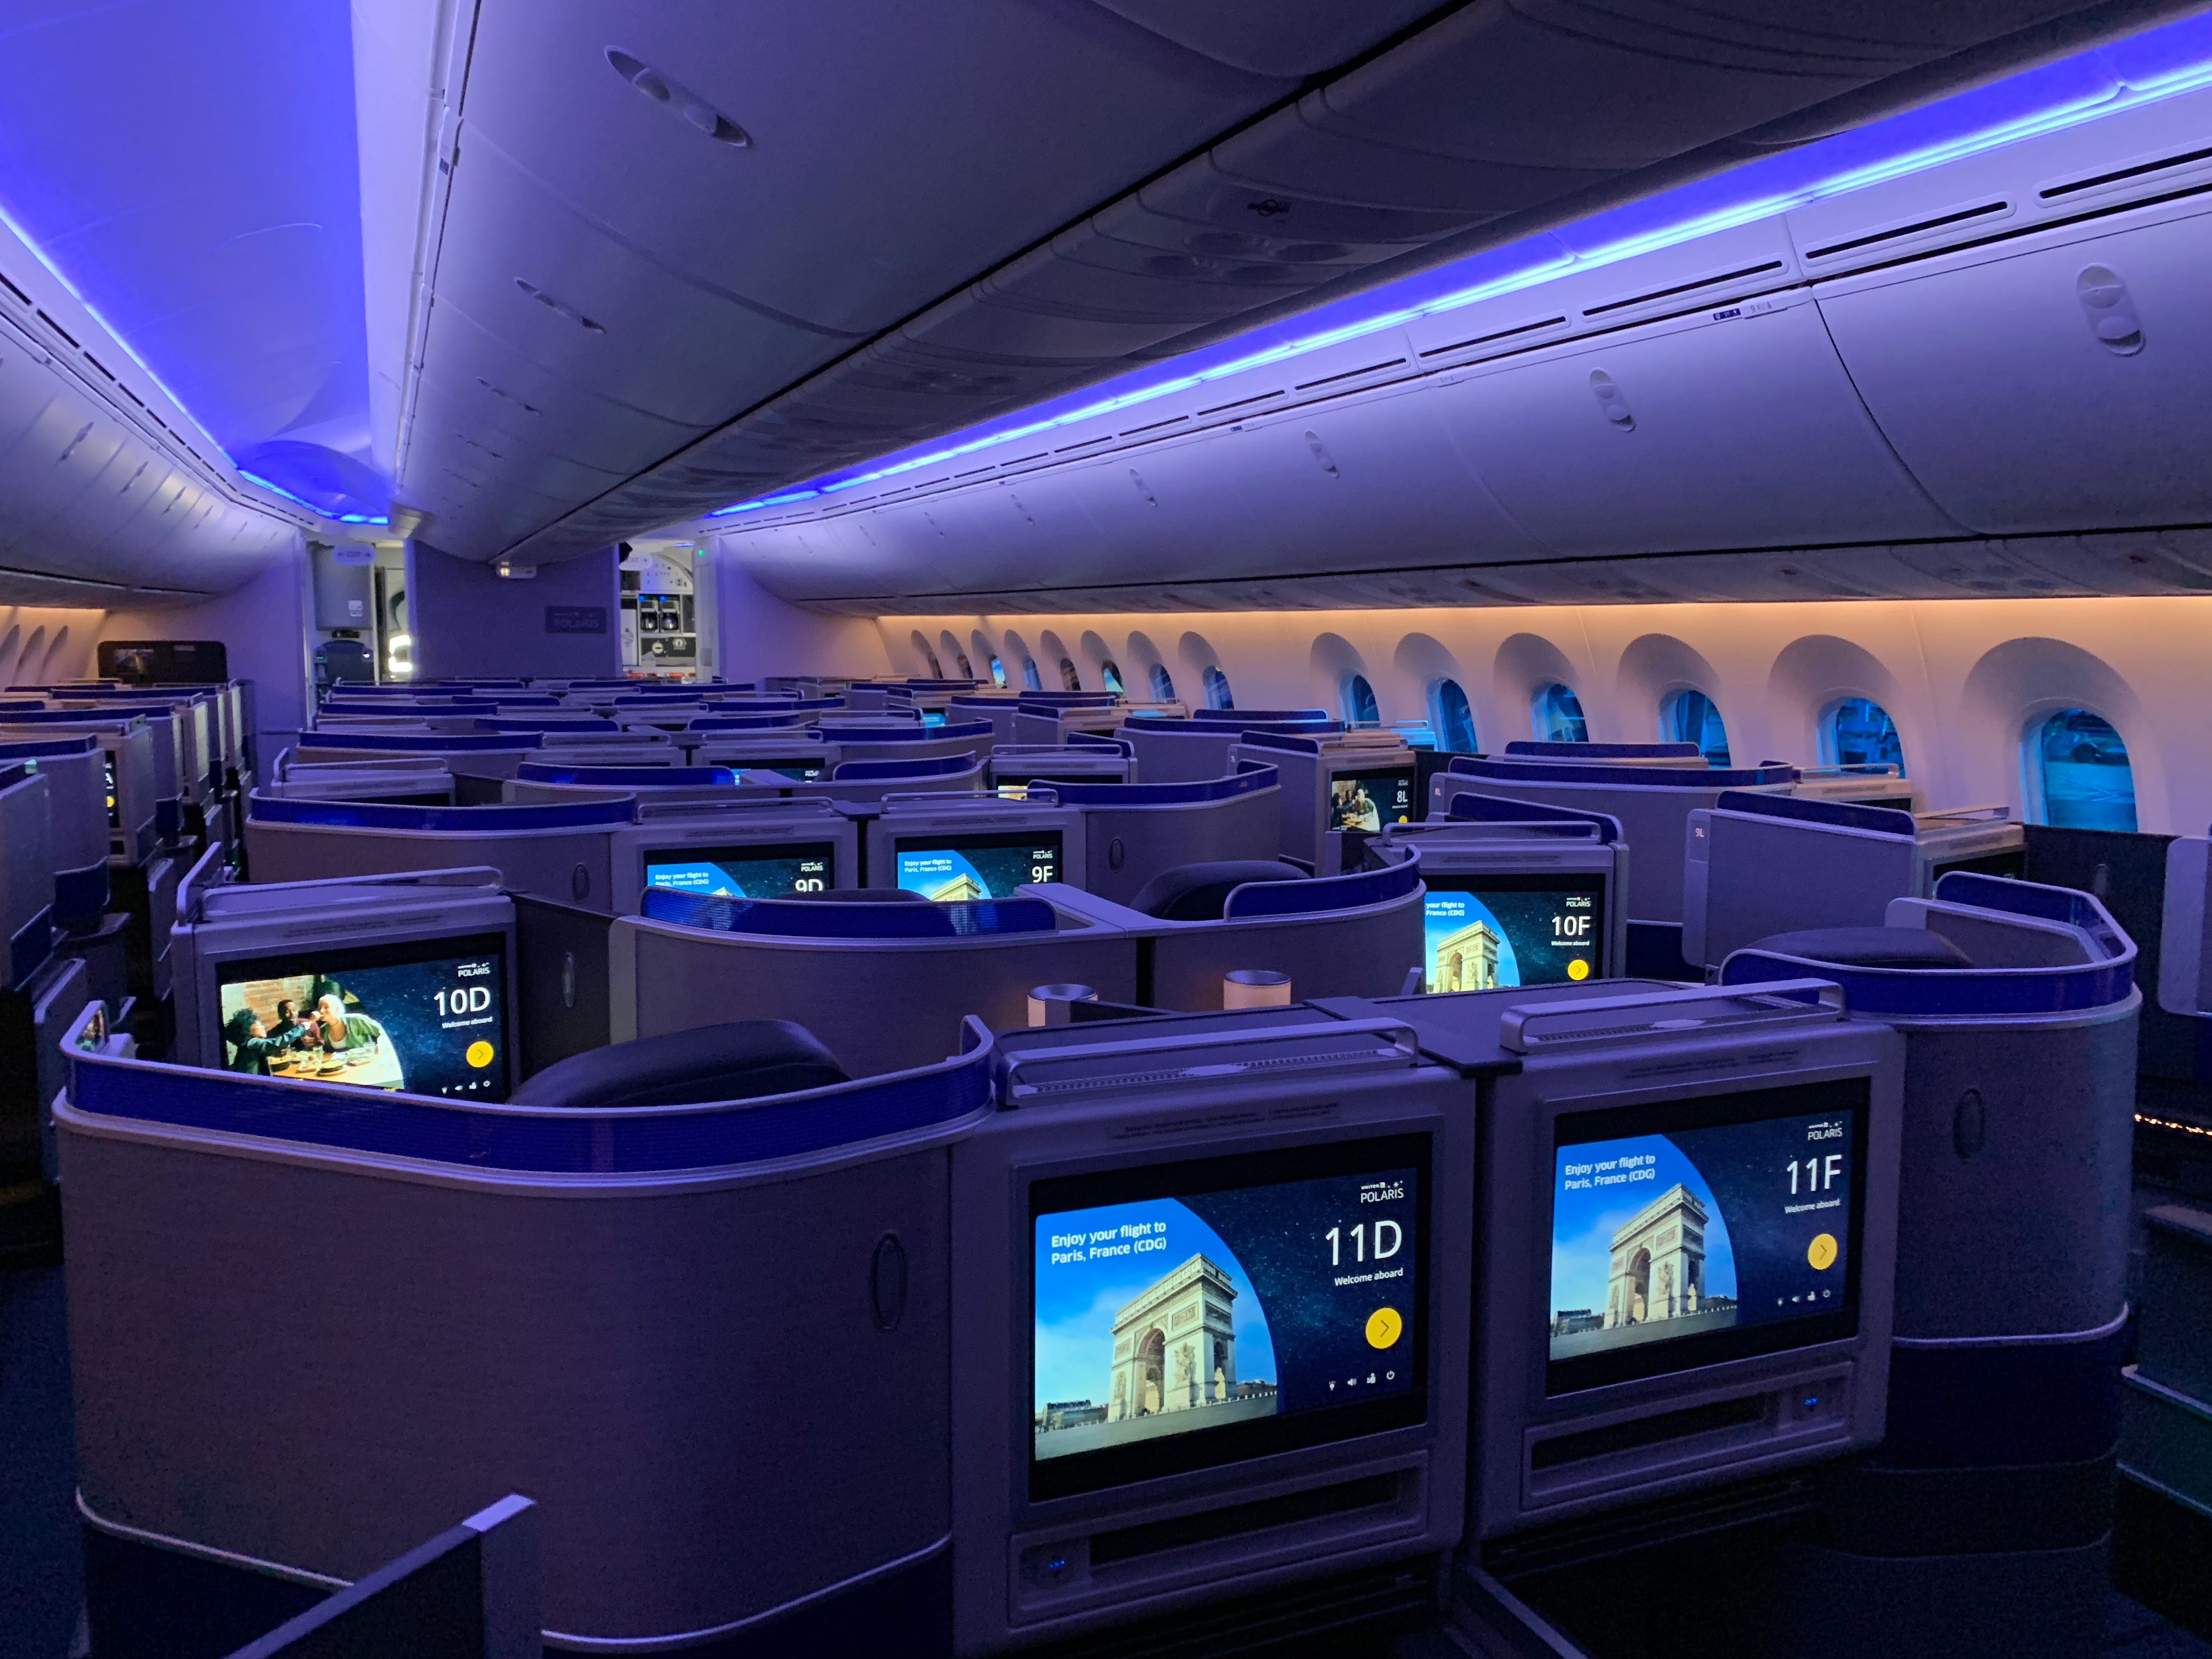 The 'Polaris' business-class cabin is seen on United Airlines' new Boeing 787-10 Dreamliner as it was prepared to enter commercial service at Washington Dulles airport on Nov. 16, 2018.